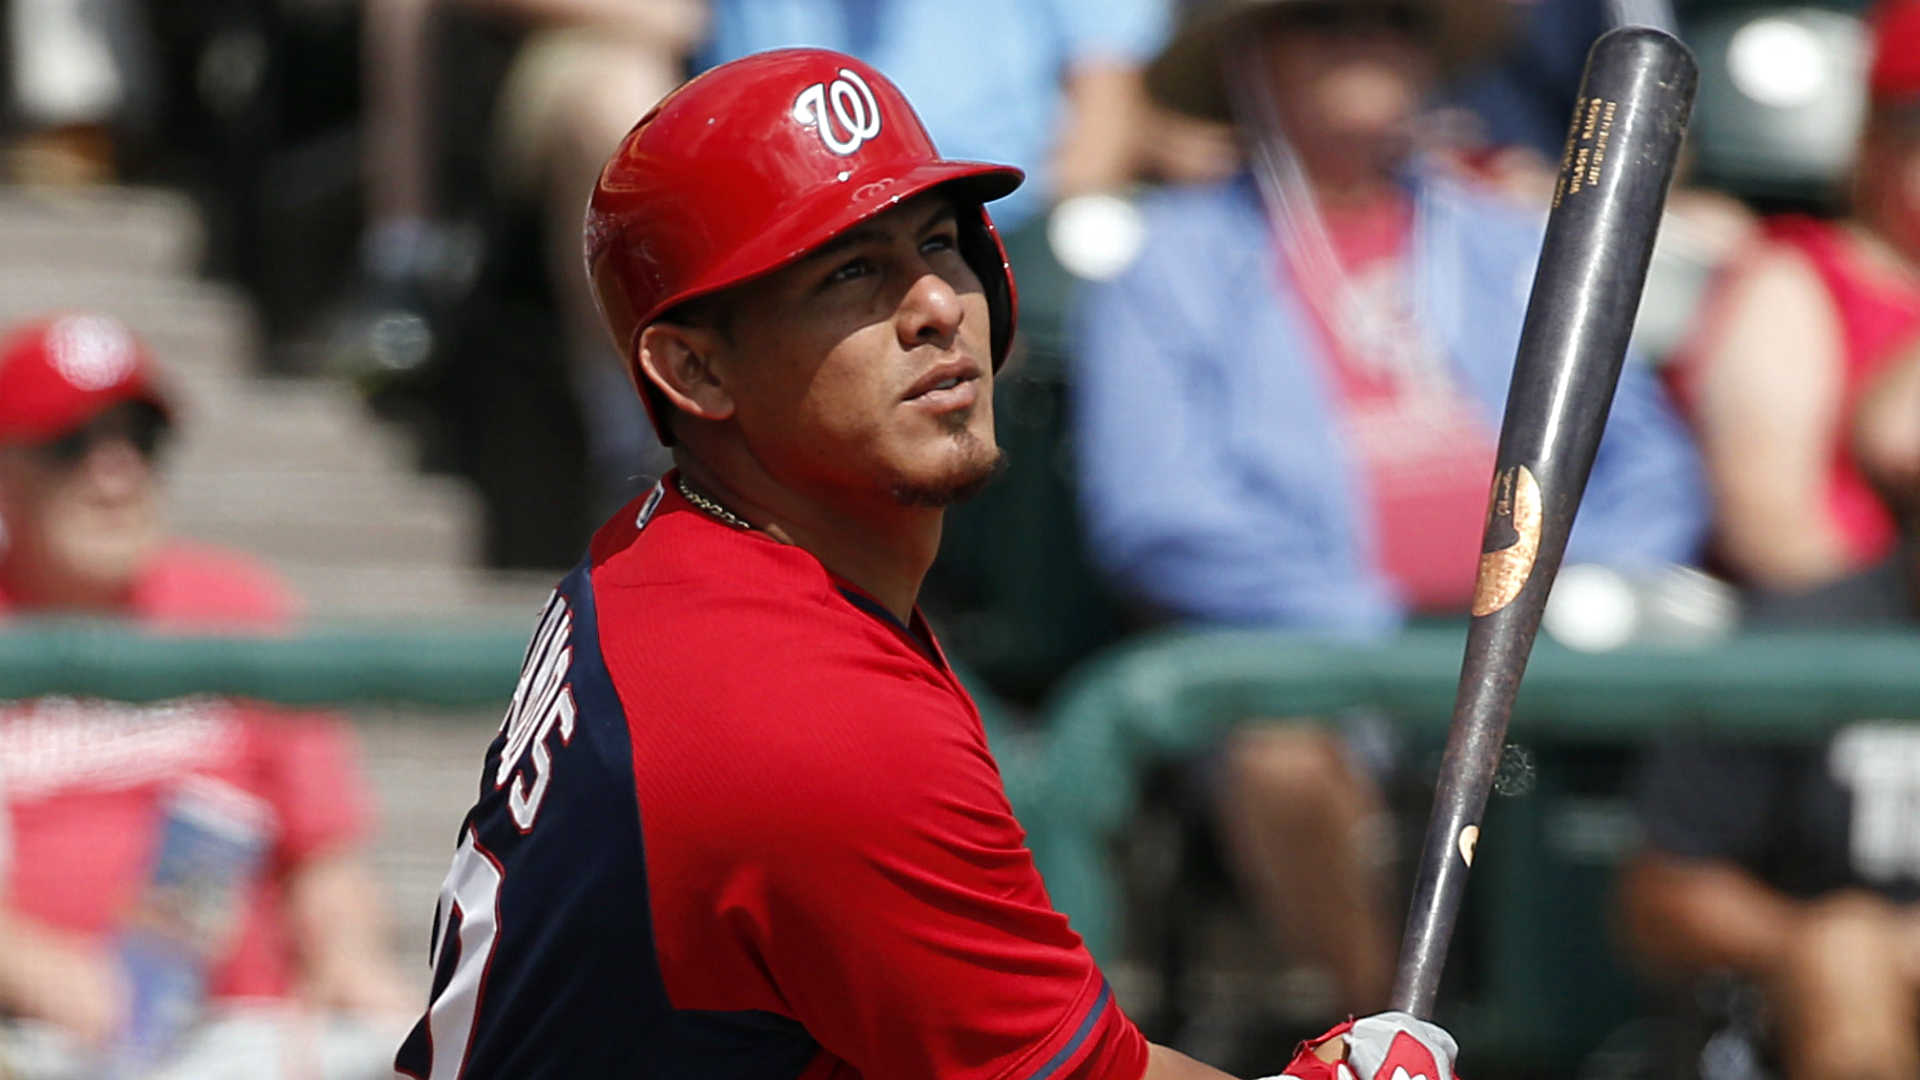 Fantasy baseball sleeper: Ramos could be a top fantasy catcher in 2014